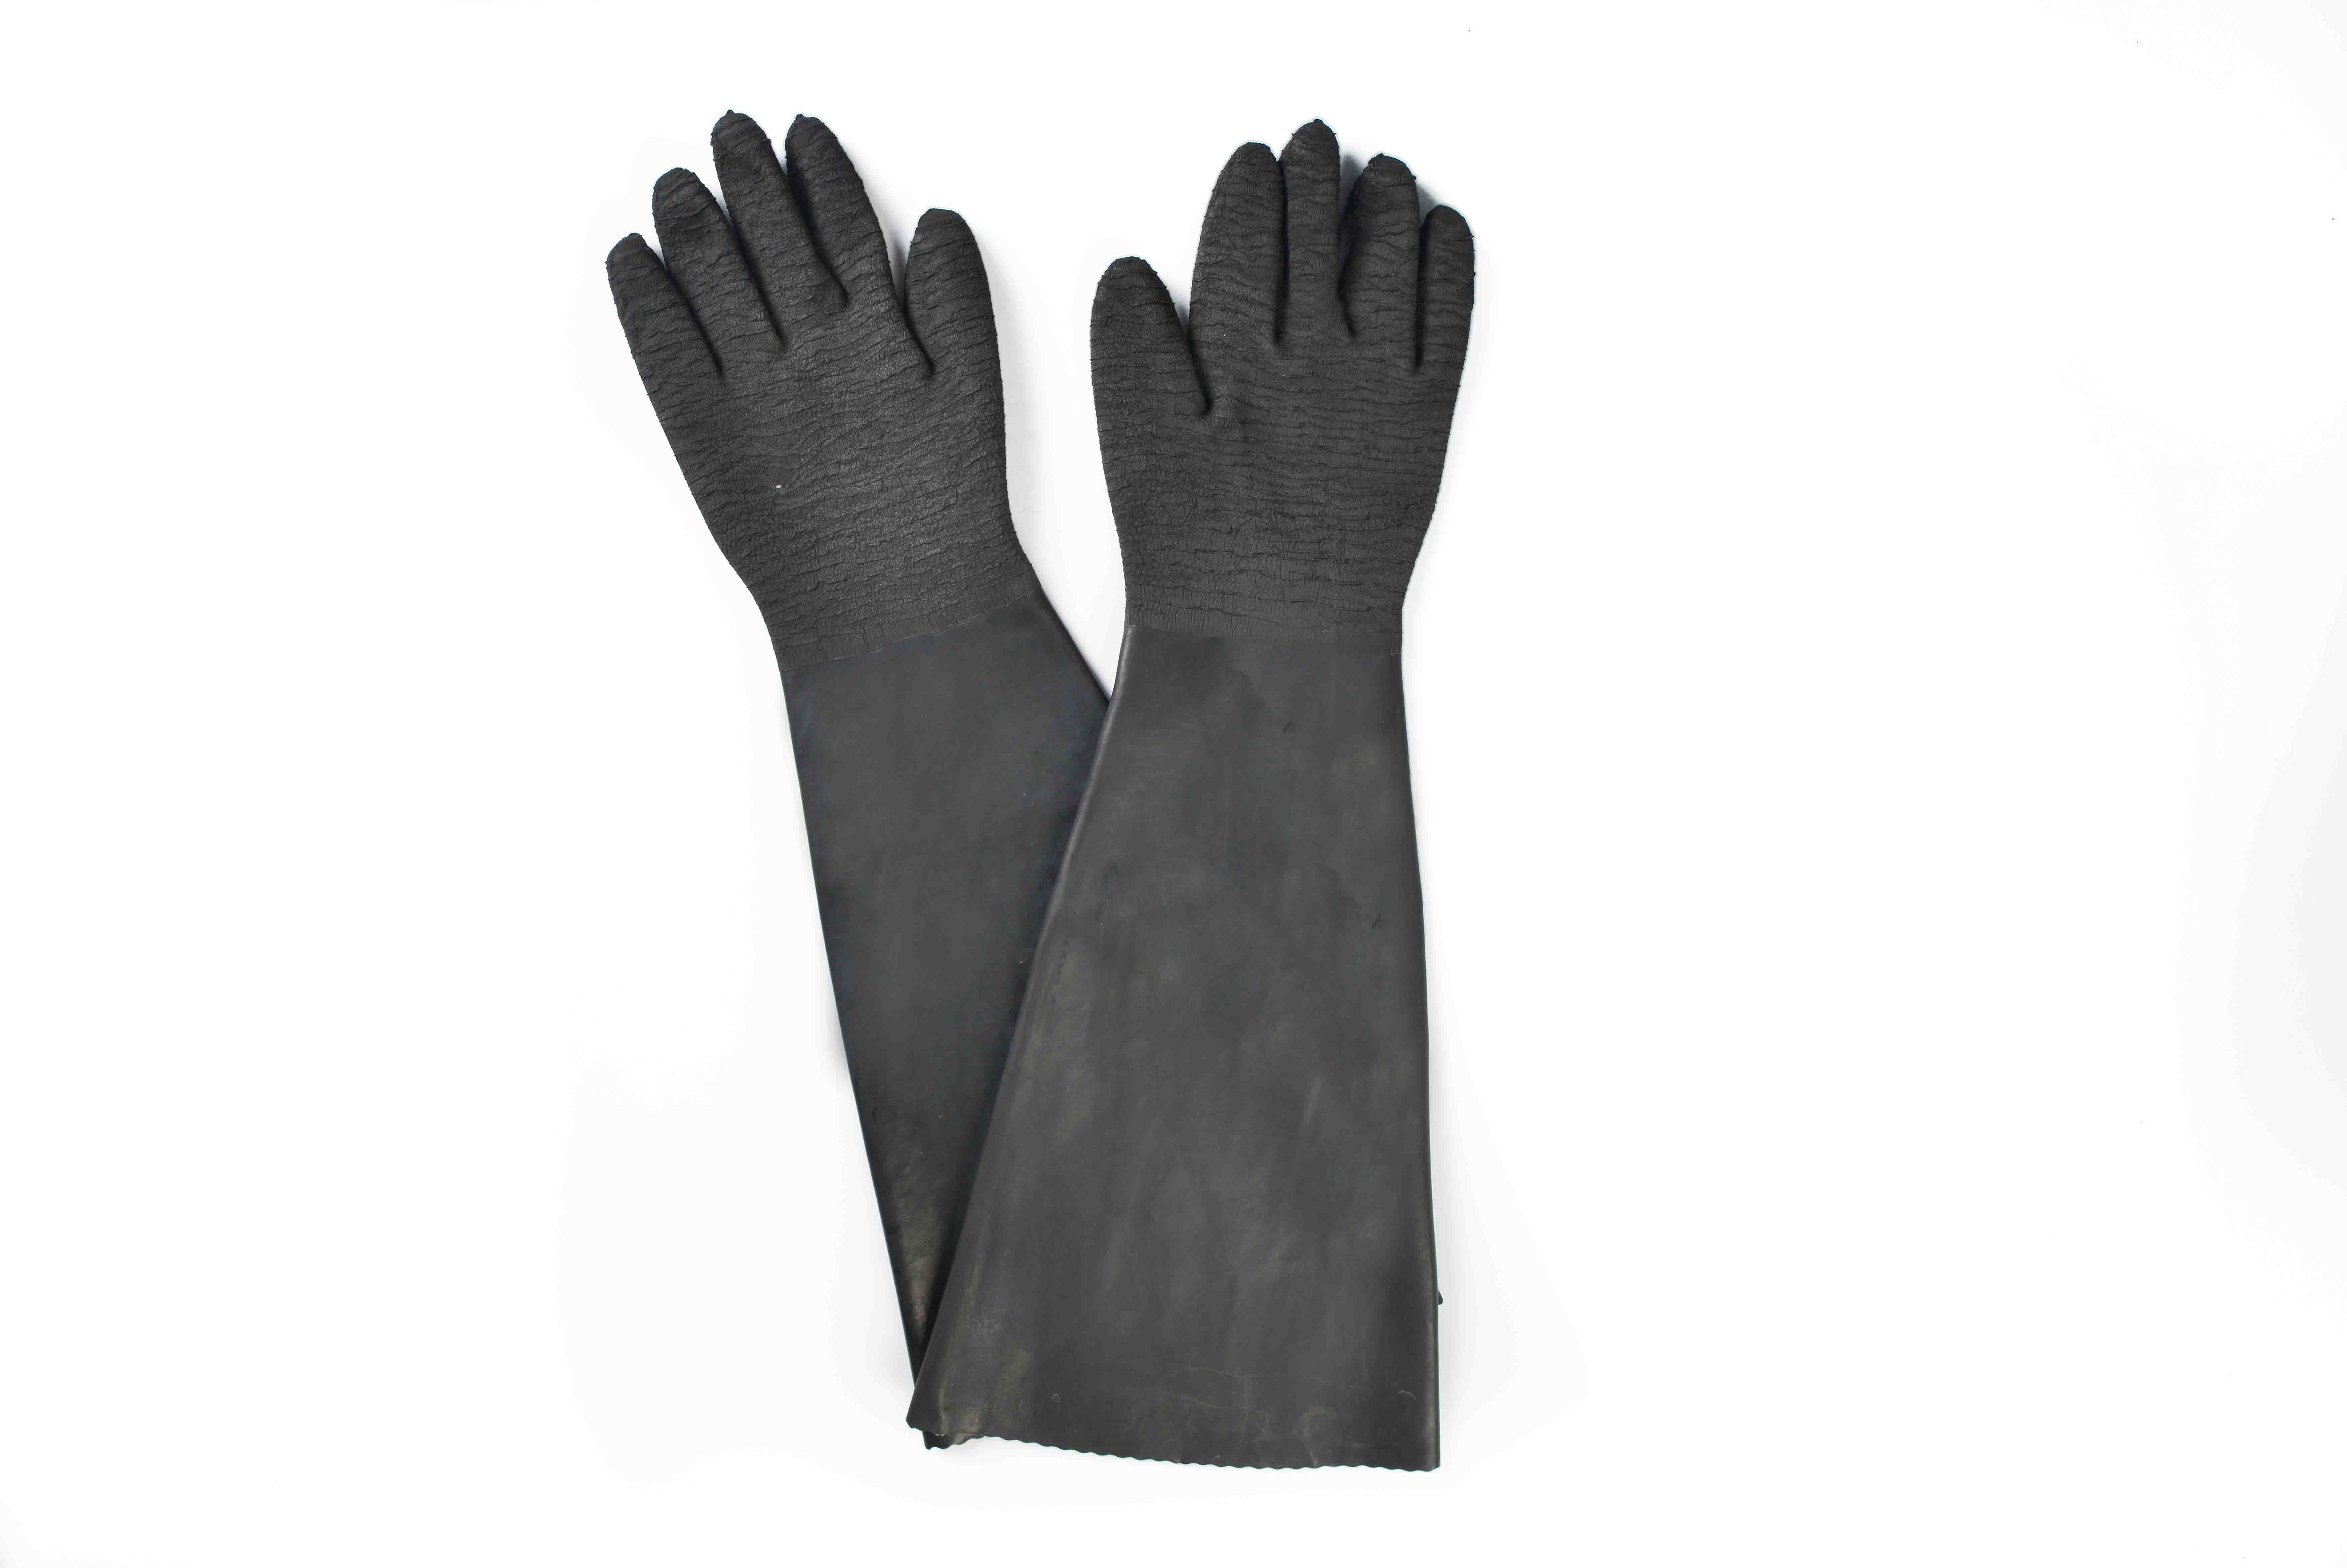 10 Years Manufacturer 24″ rubber glove with cotton linning-rough finish for Cyprus